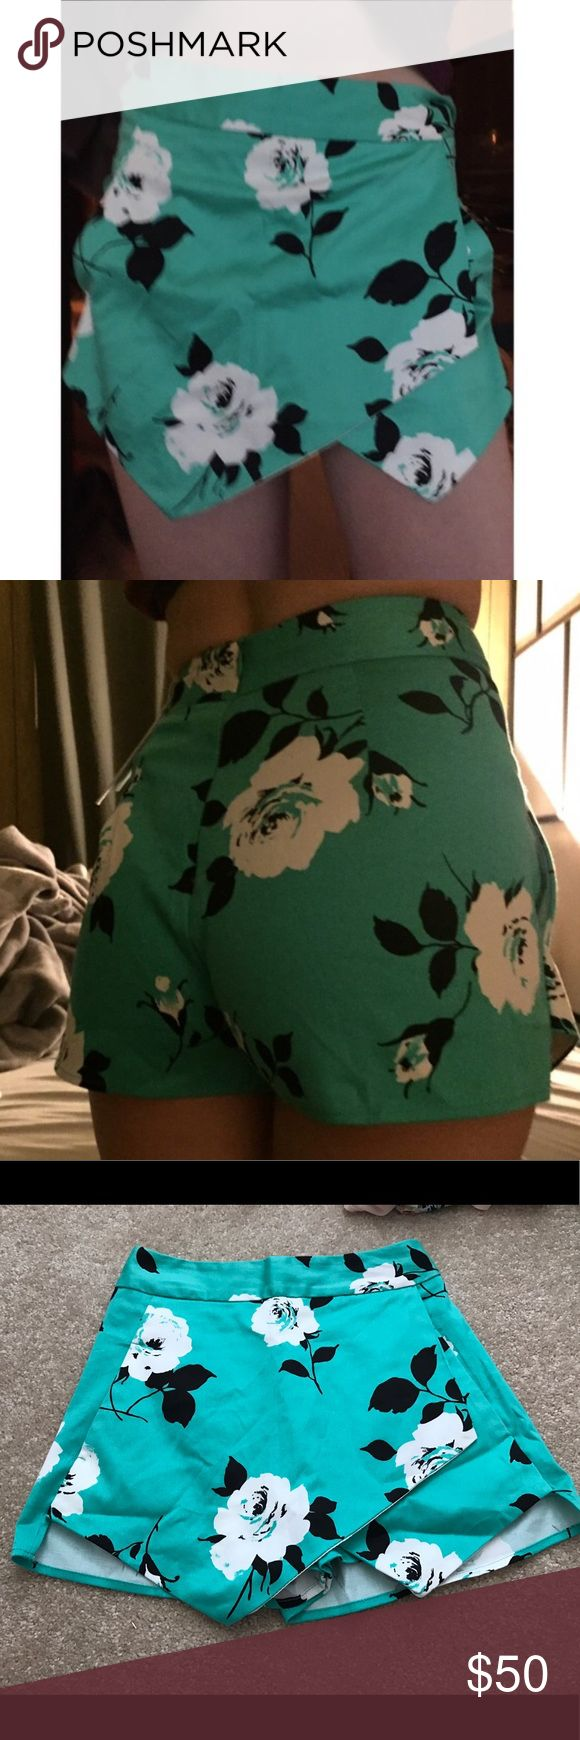 """Aqua Teal Blue Green Skort Skirt Shorts XS Floral XS fits 00-1 or 23-25"""" waist, my waist is 25"""" or size 1 and it's a little tight so maybe perfect for 24"""" Aqua Shorts Skorts"""